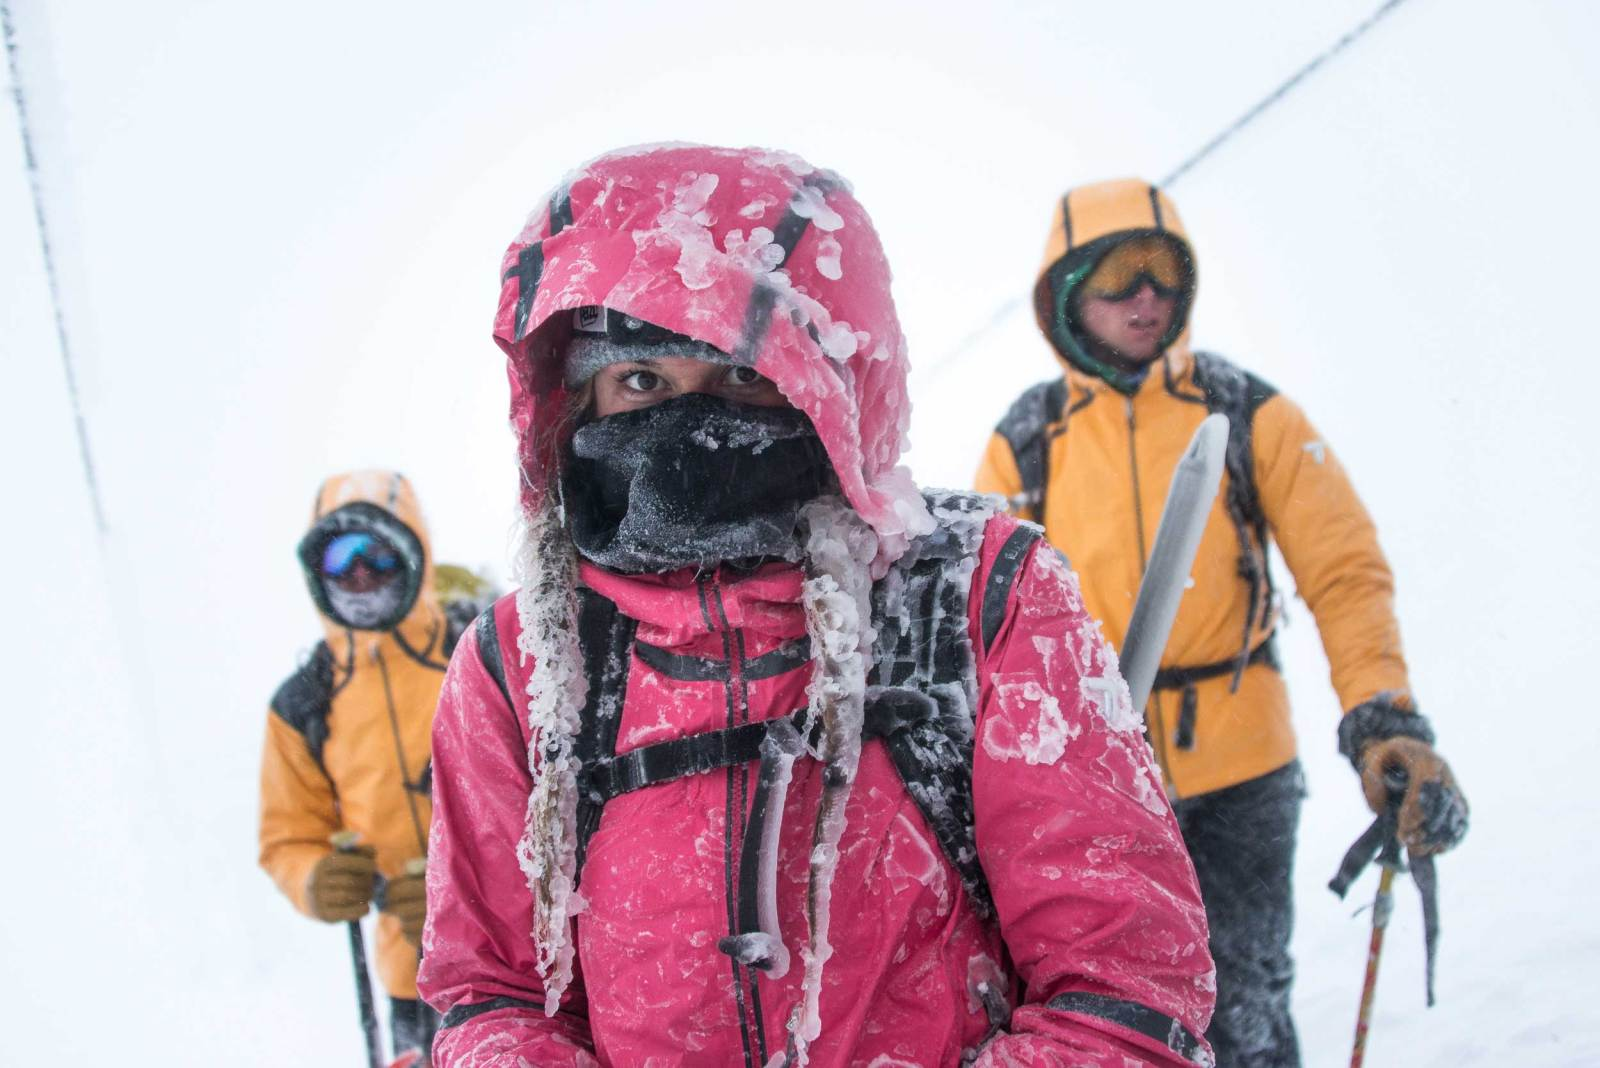 Director of Toughness Lauren Steele and 2 Mt. Hood guides in icy conditions